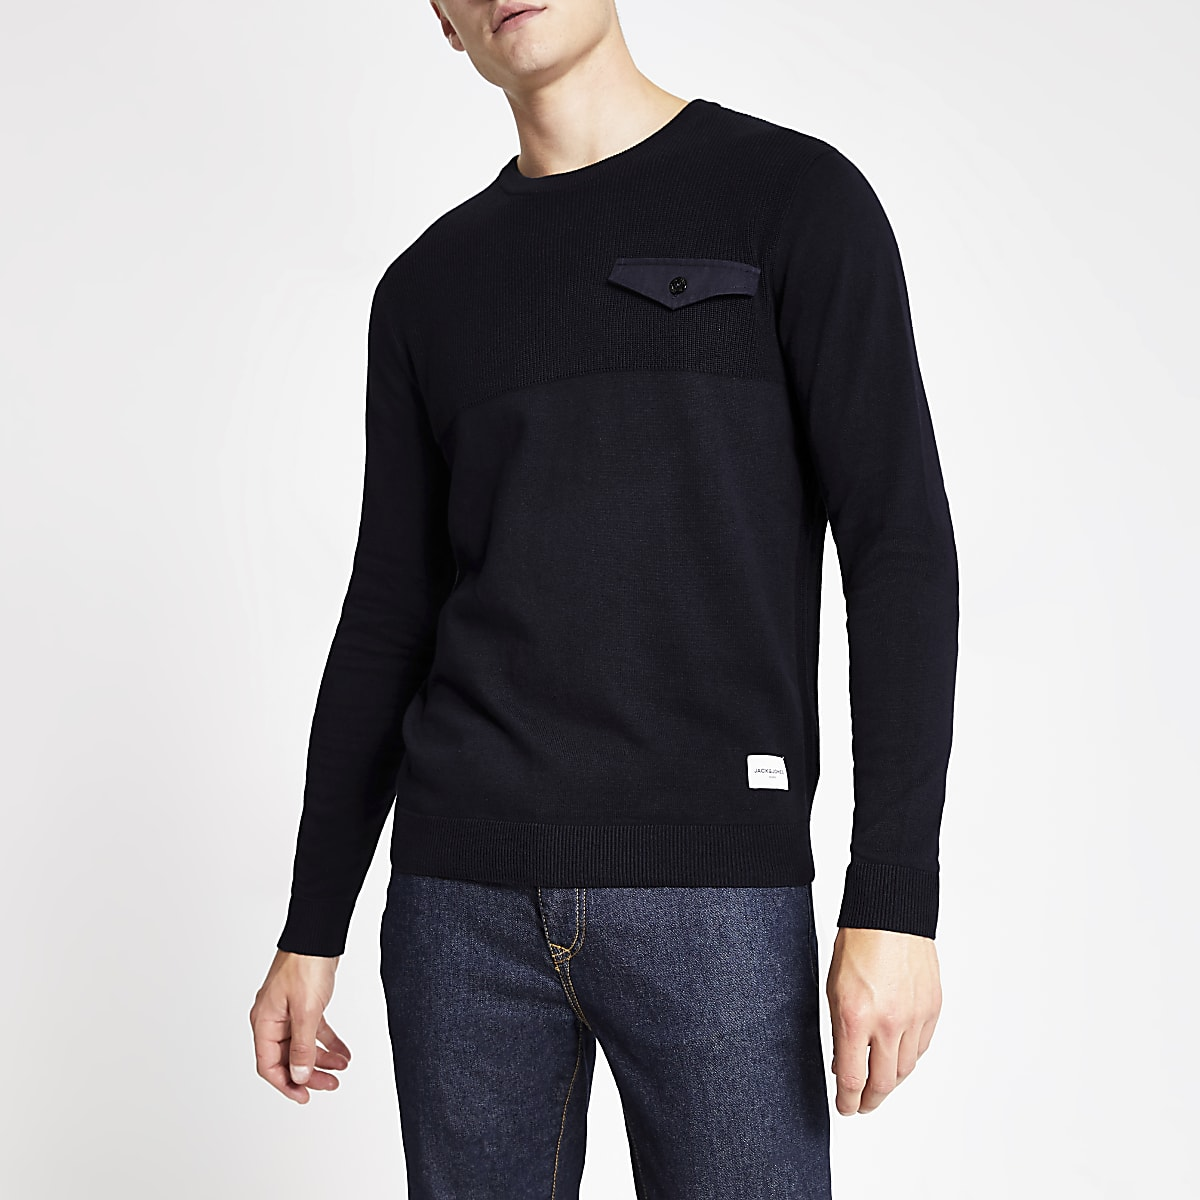 Jack and Jones - Marineblauwe gebreide pullover